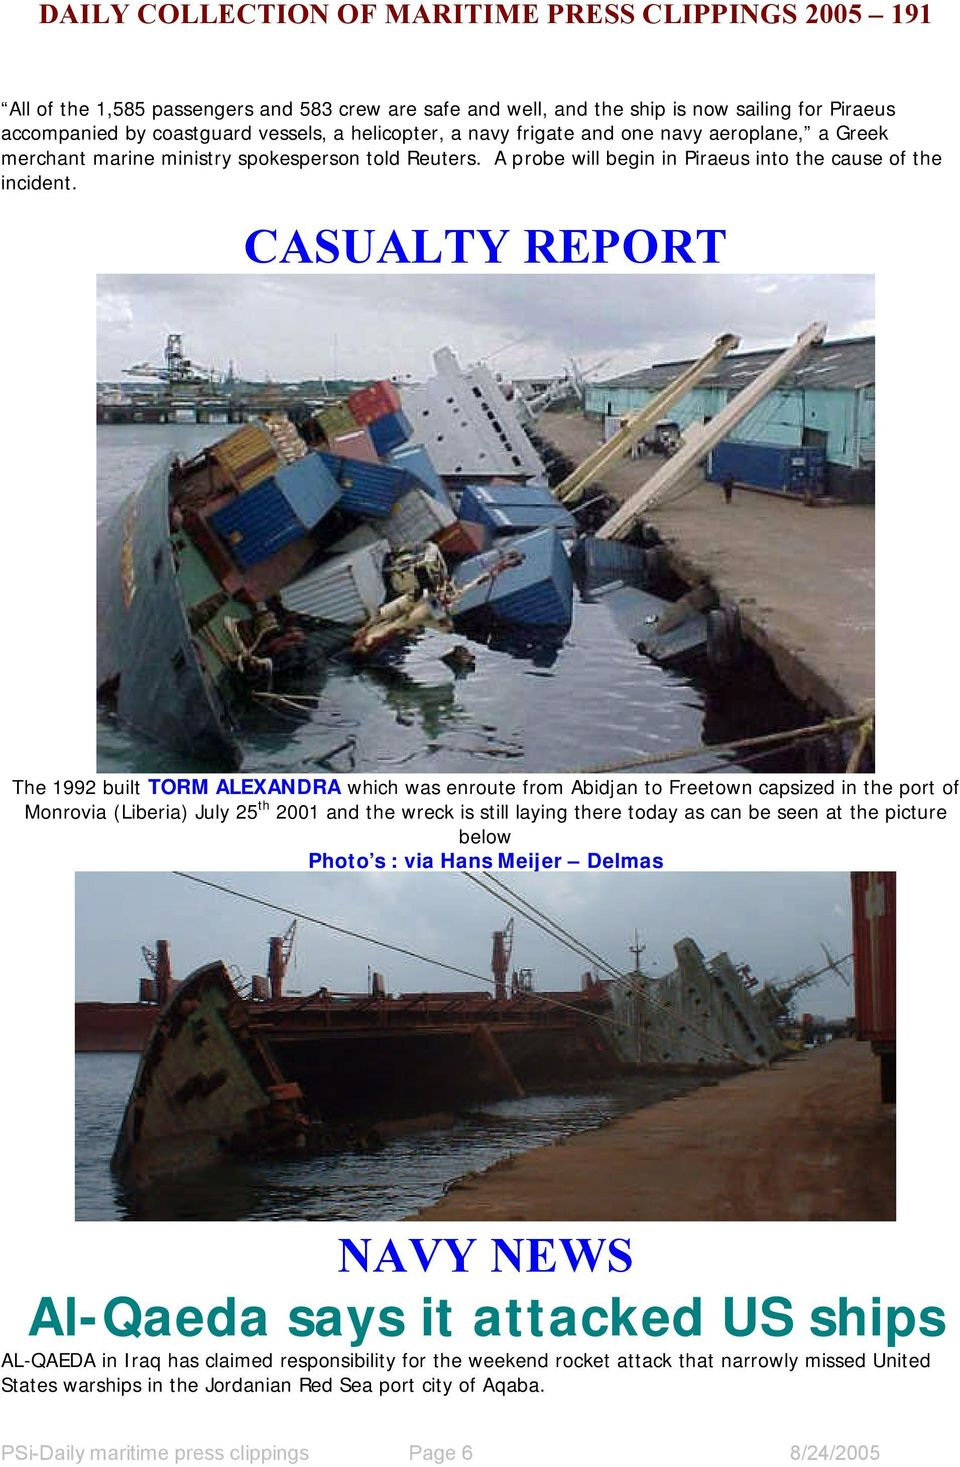 CASUALTY REPORT The 1992 built TORM ALEXANDRA which was enroute from Abidjan to Freetown capsized in the port of Monrovia (Liberia) July 25 th 2001 and the wreck is still laying there today as can be